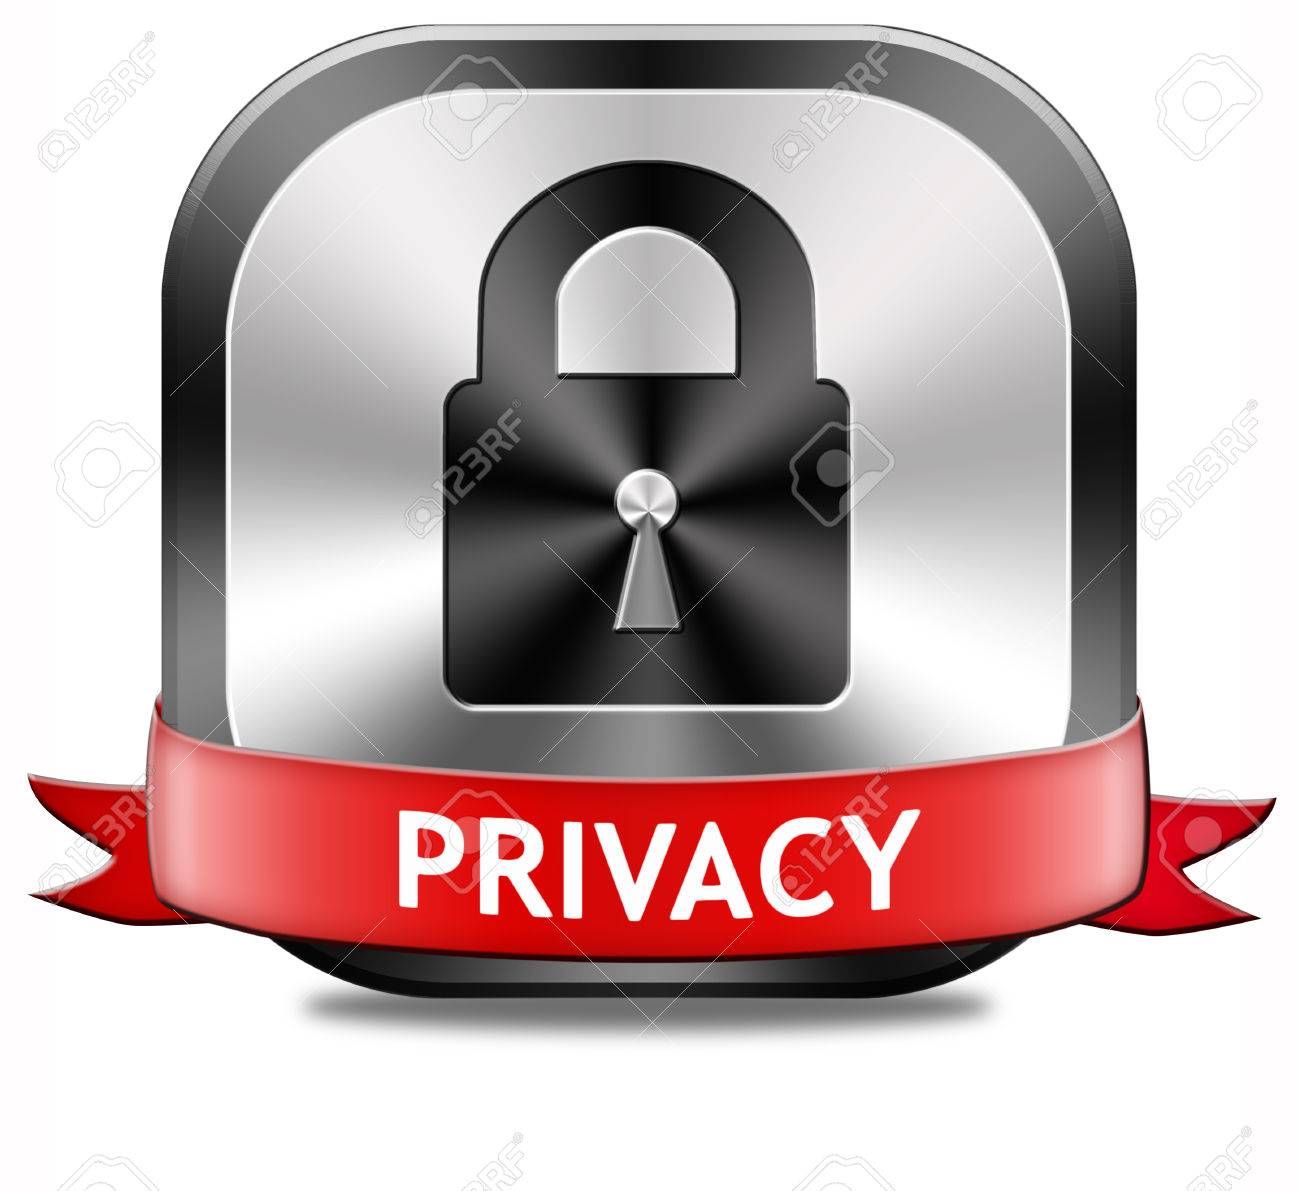 Privacy Private Area Protection Of Personal Online Data Or Confidential Information Password Protected Info Button